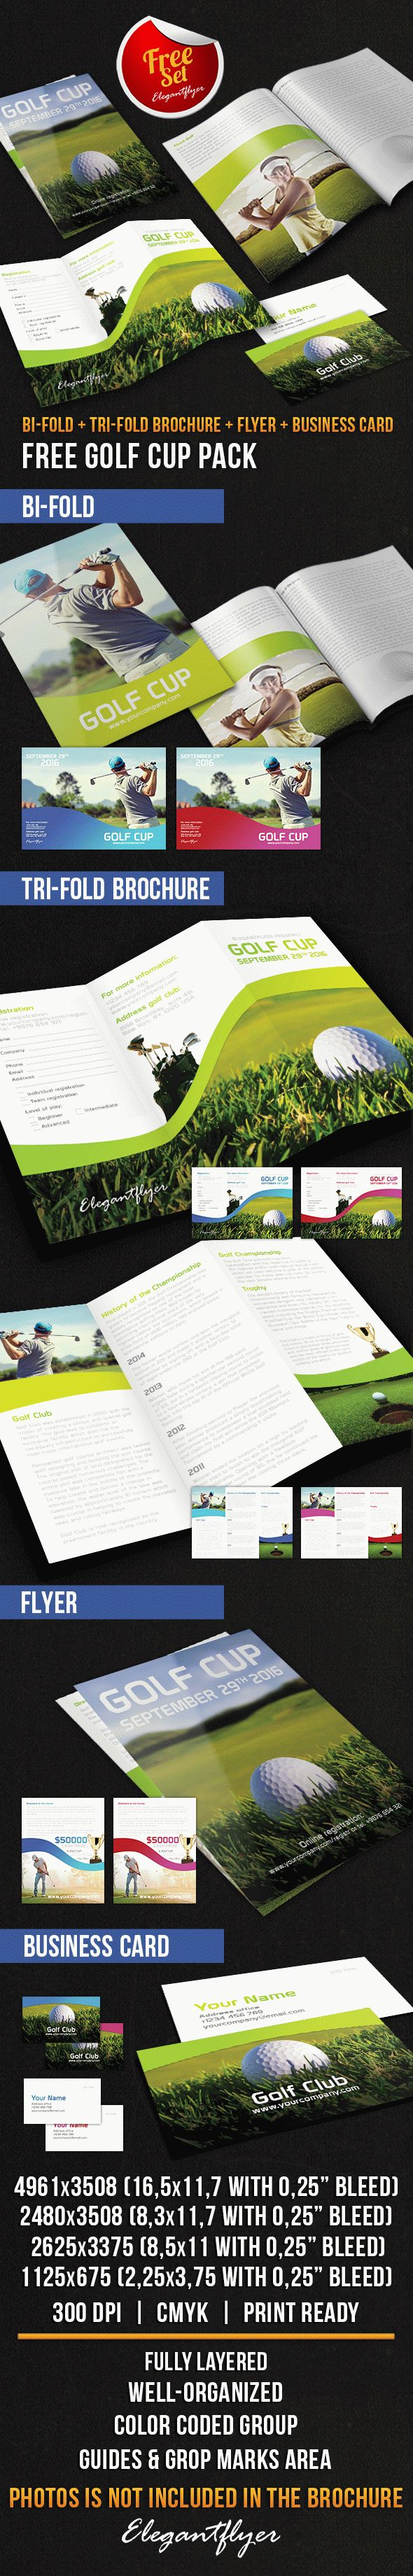 Golf Cup Brochure Pack – Free PSD Template